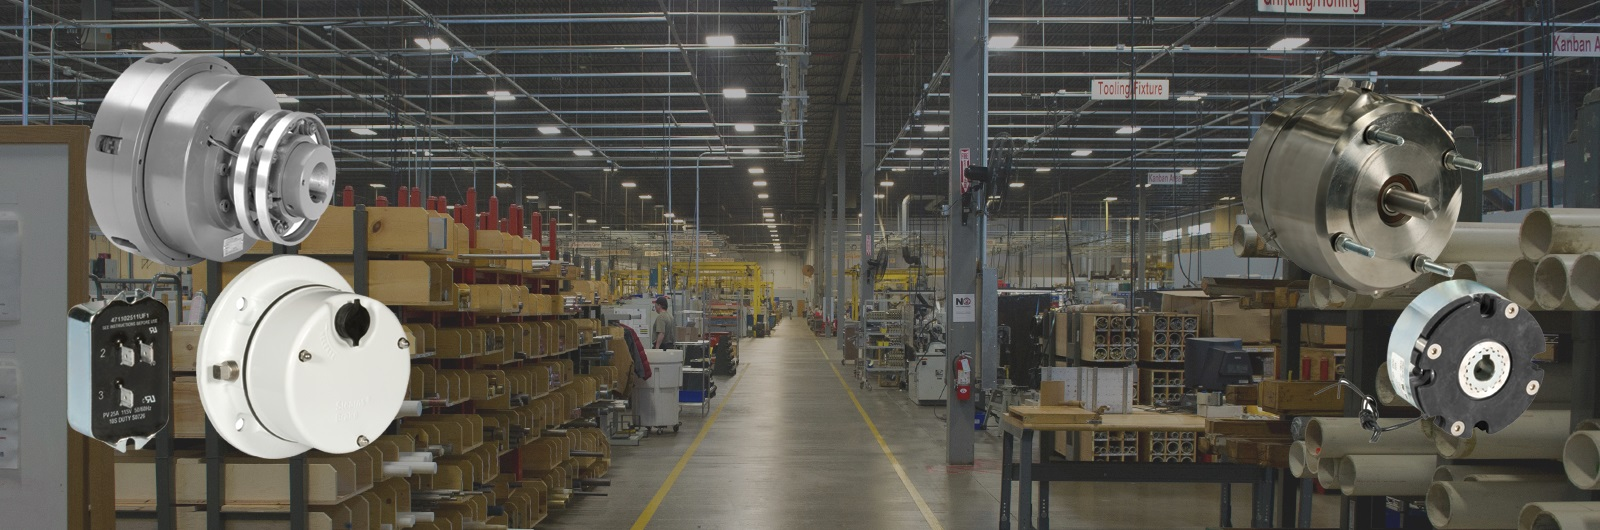 stearns brakes manufacturing facility with product snapshots